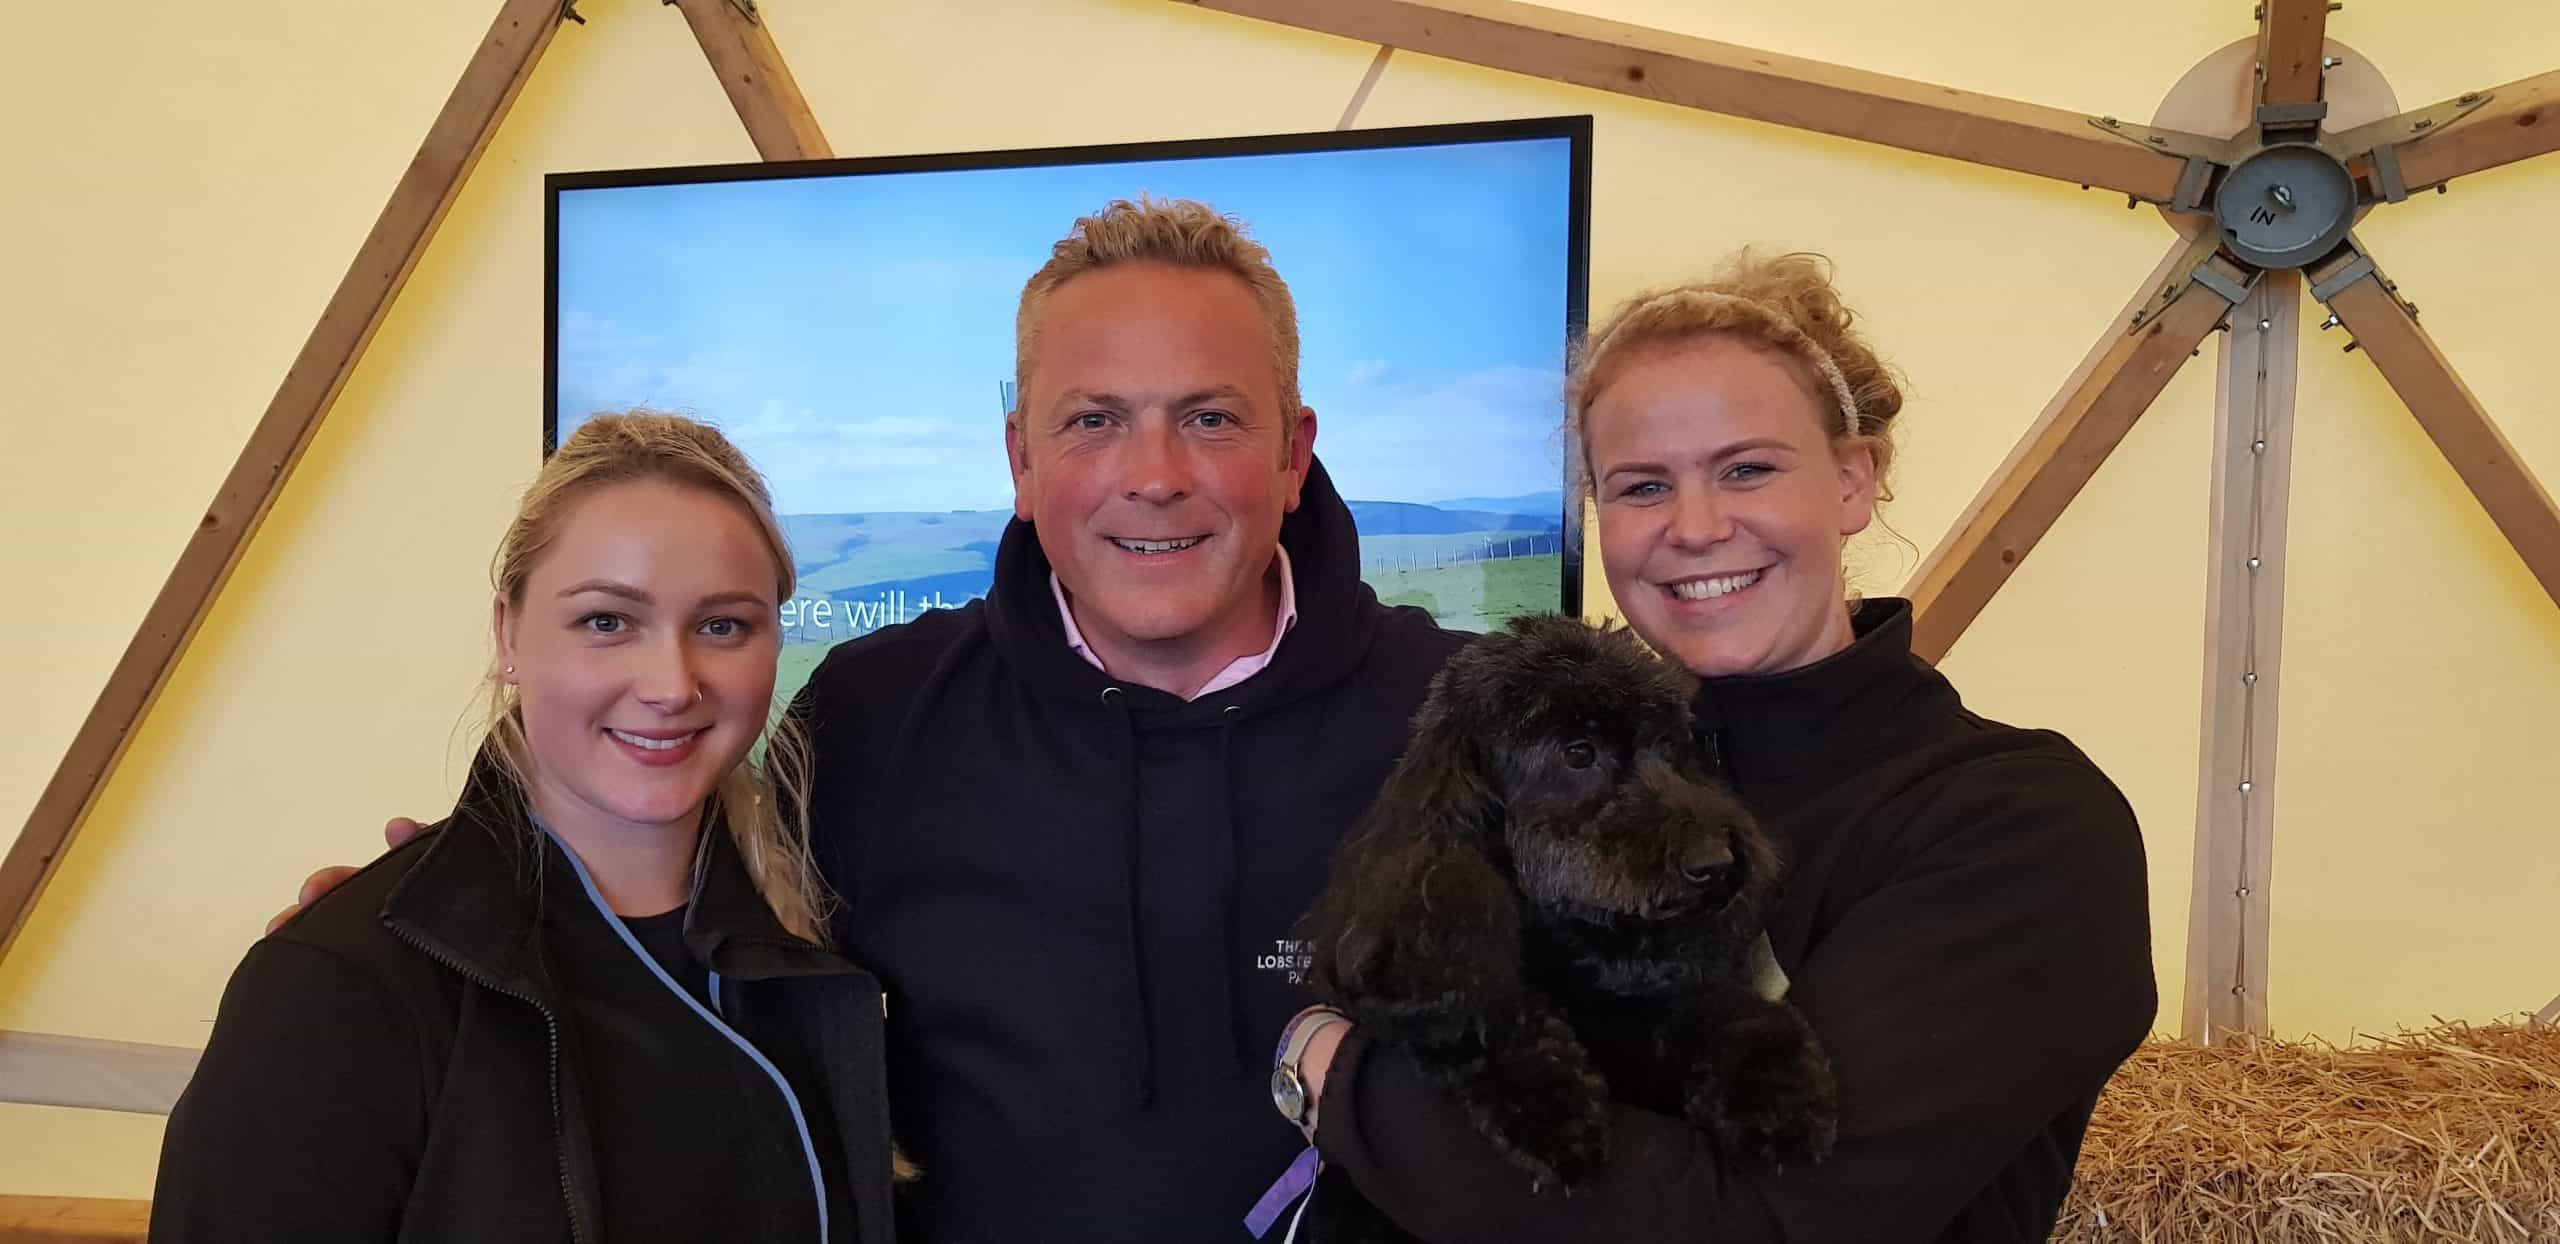 The Dog House Leicester at Countryfile Live